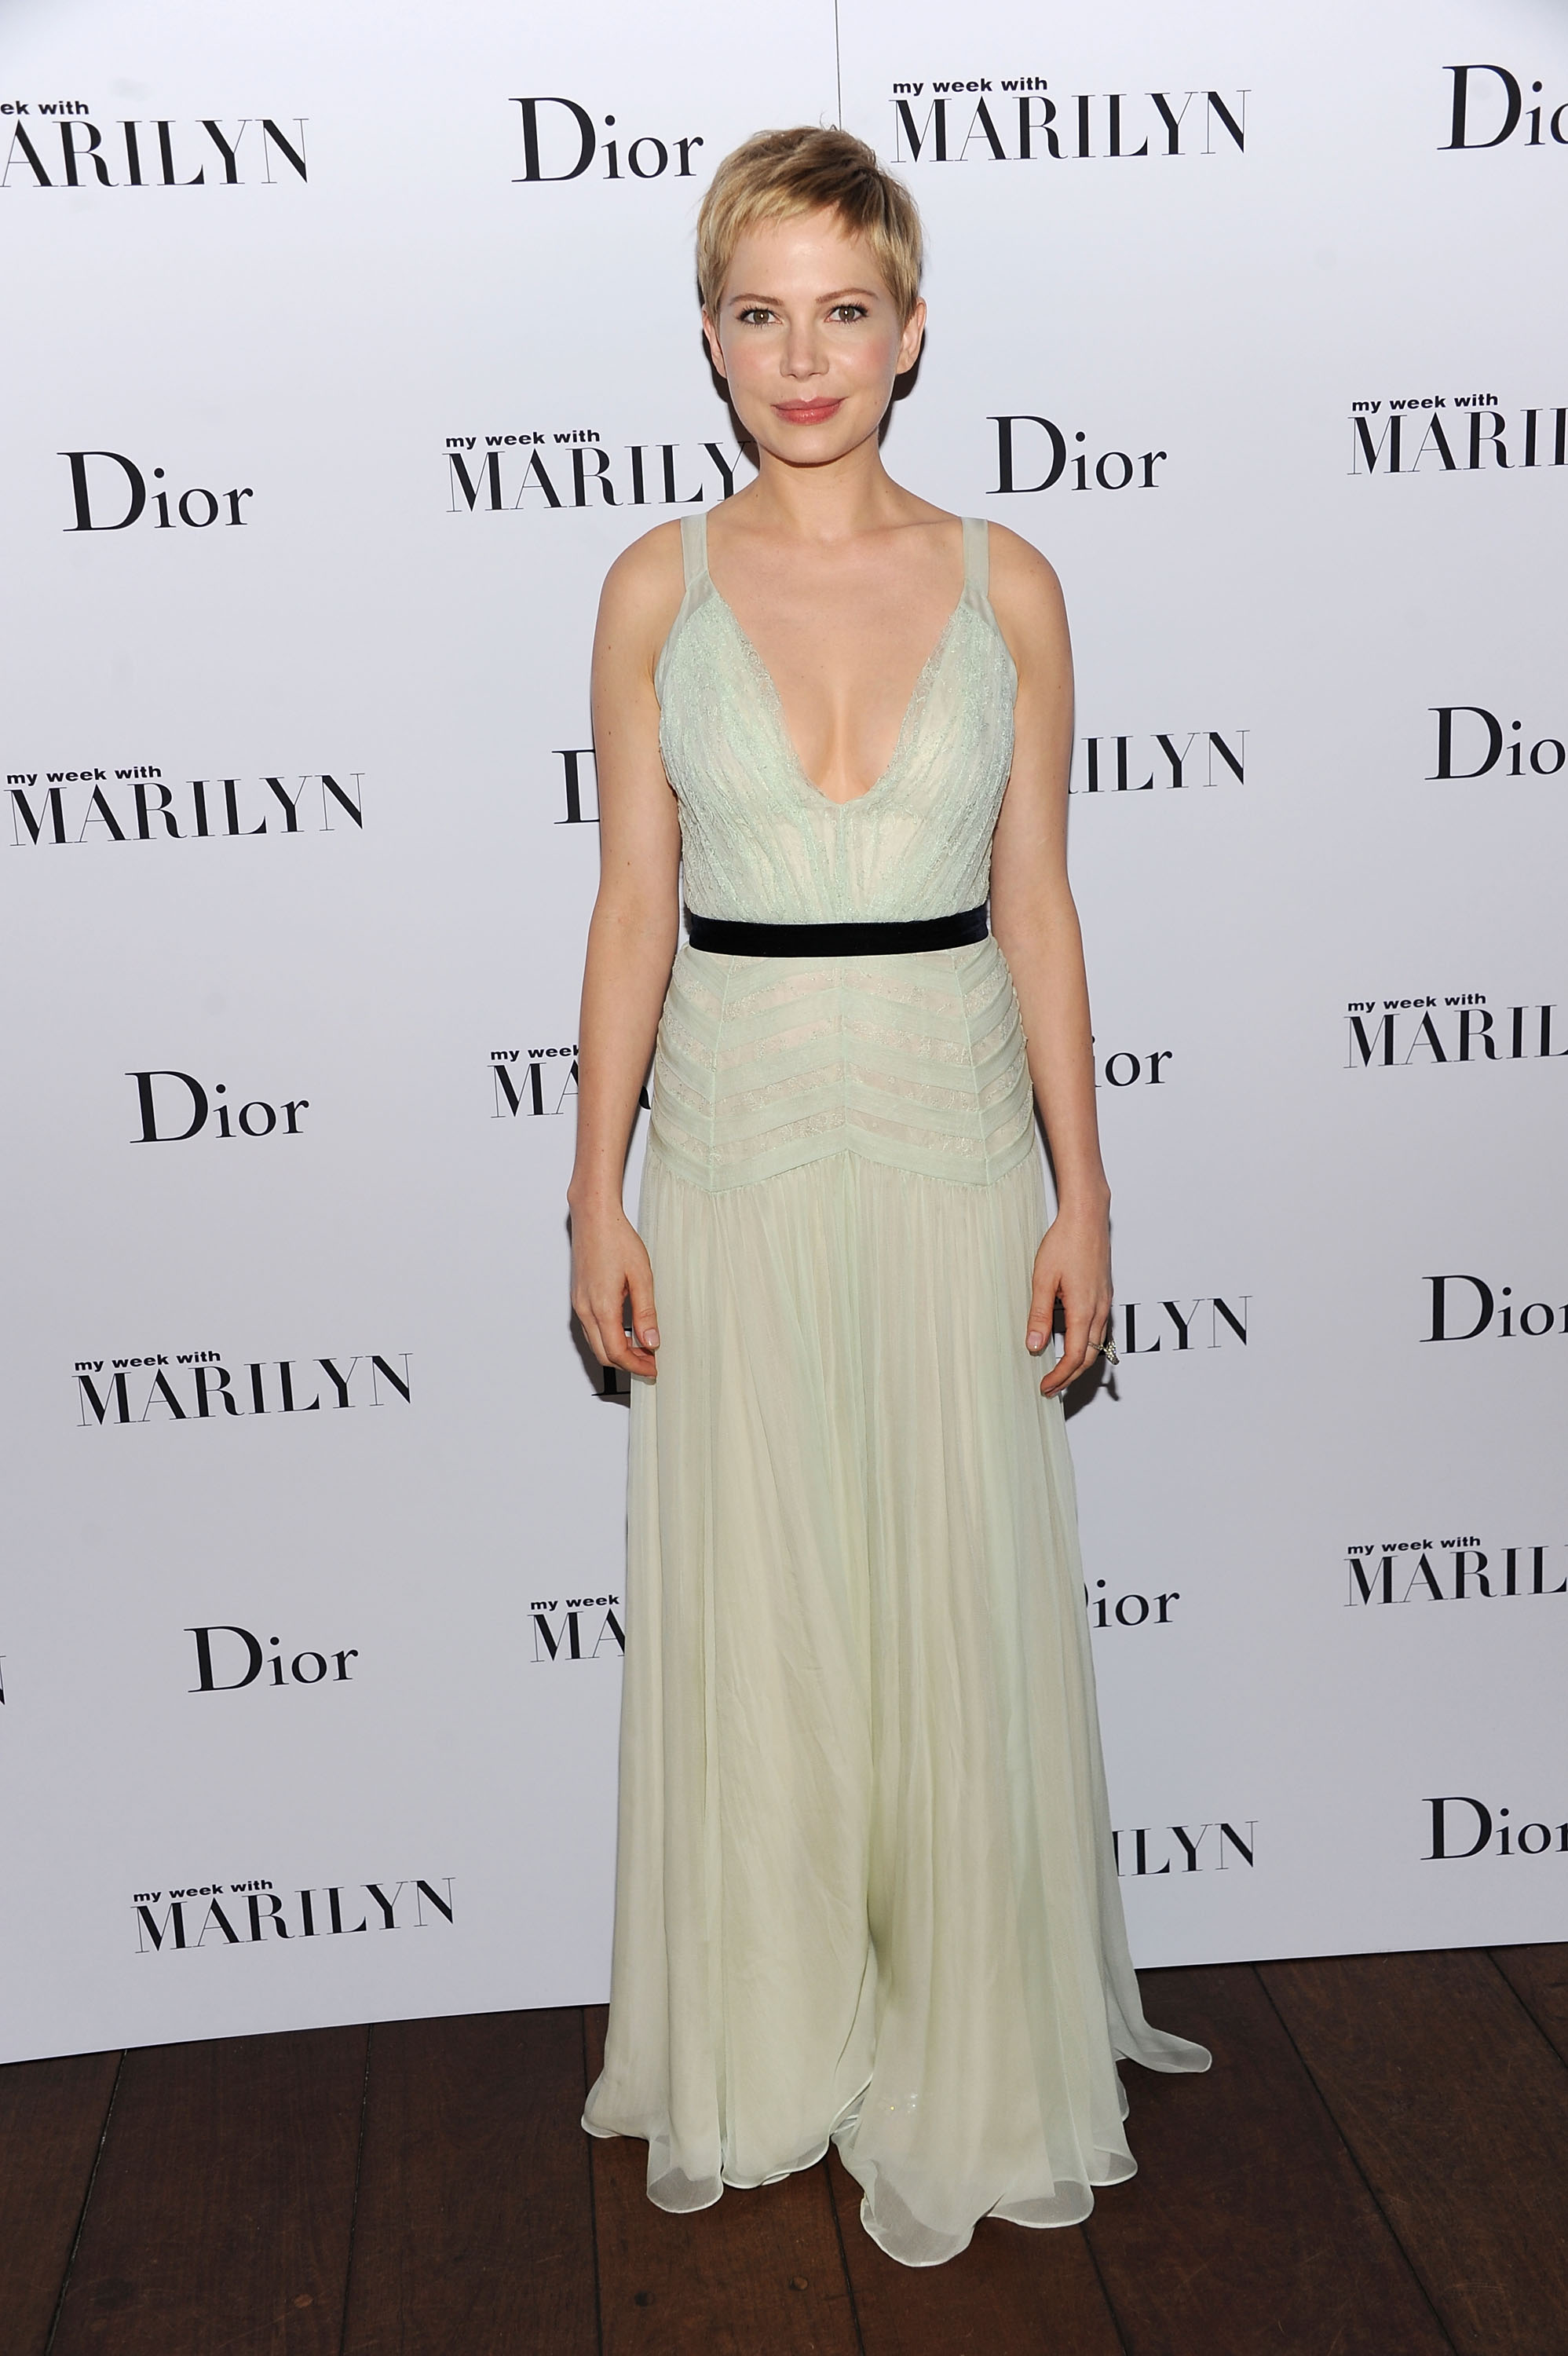 Michelle WIlliams was glowing at the afer party for My Week With Marilyn.